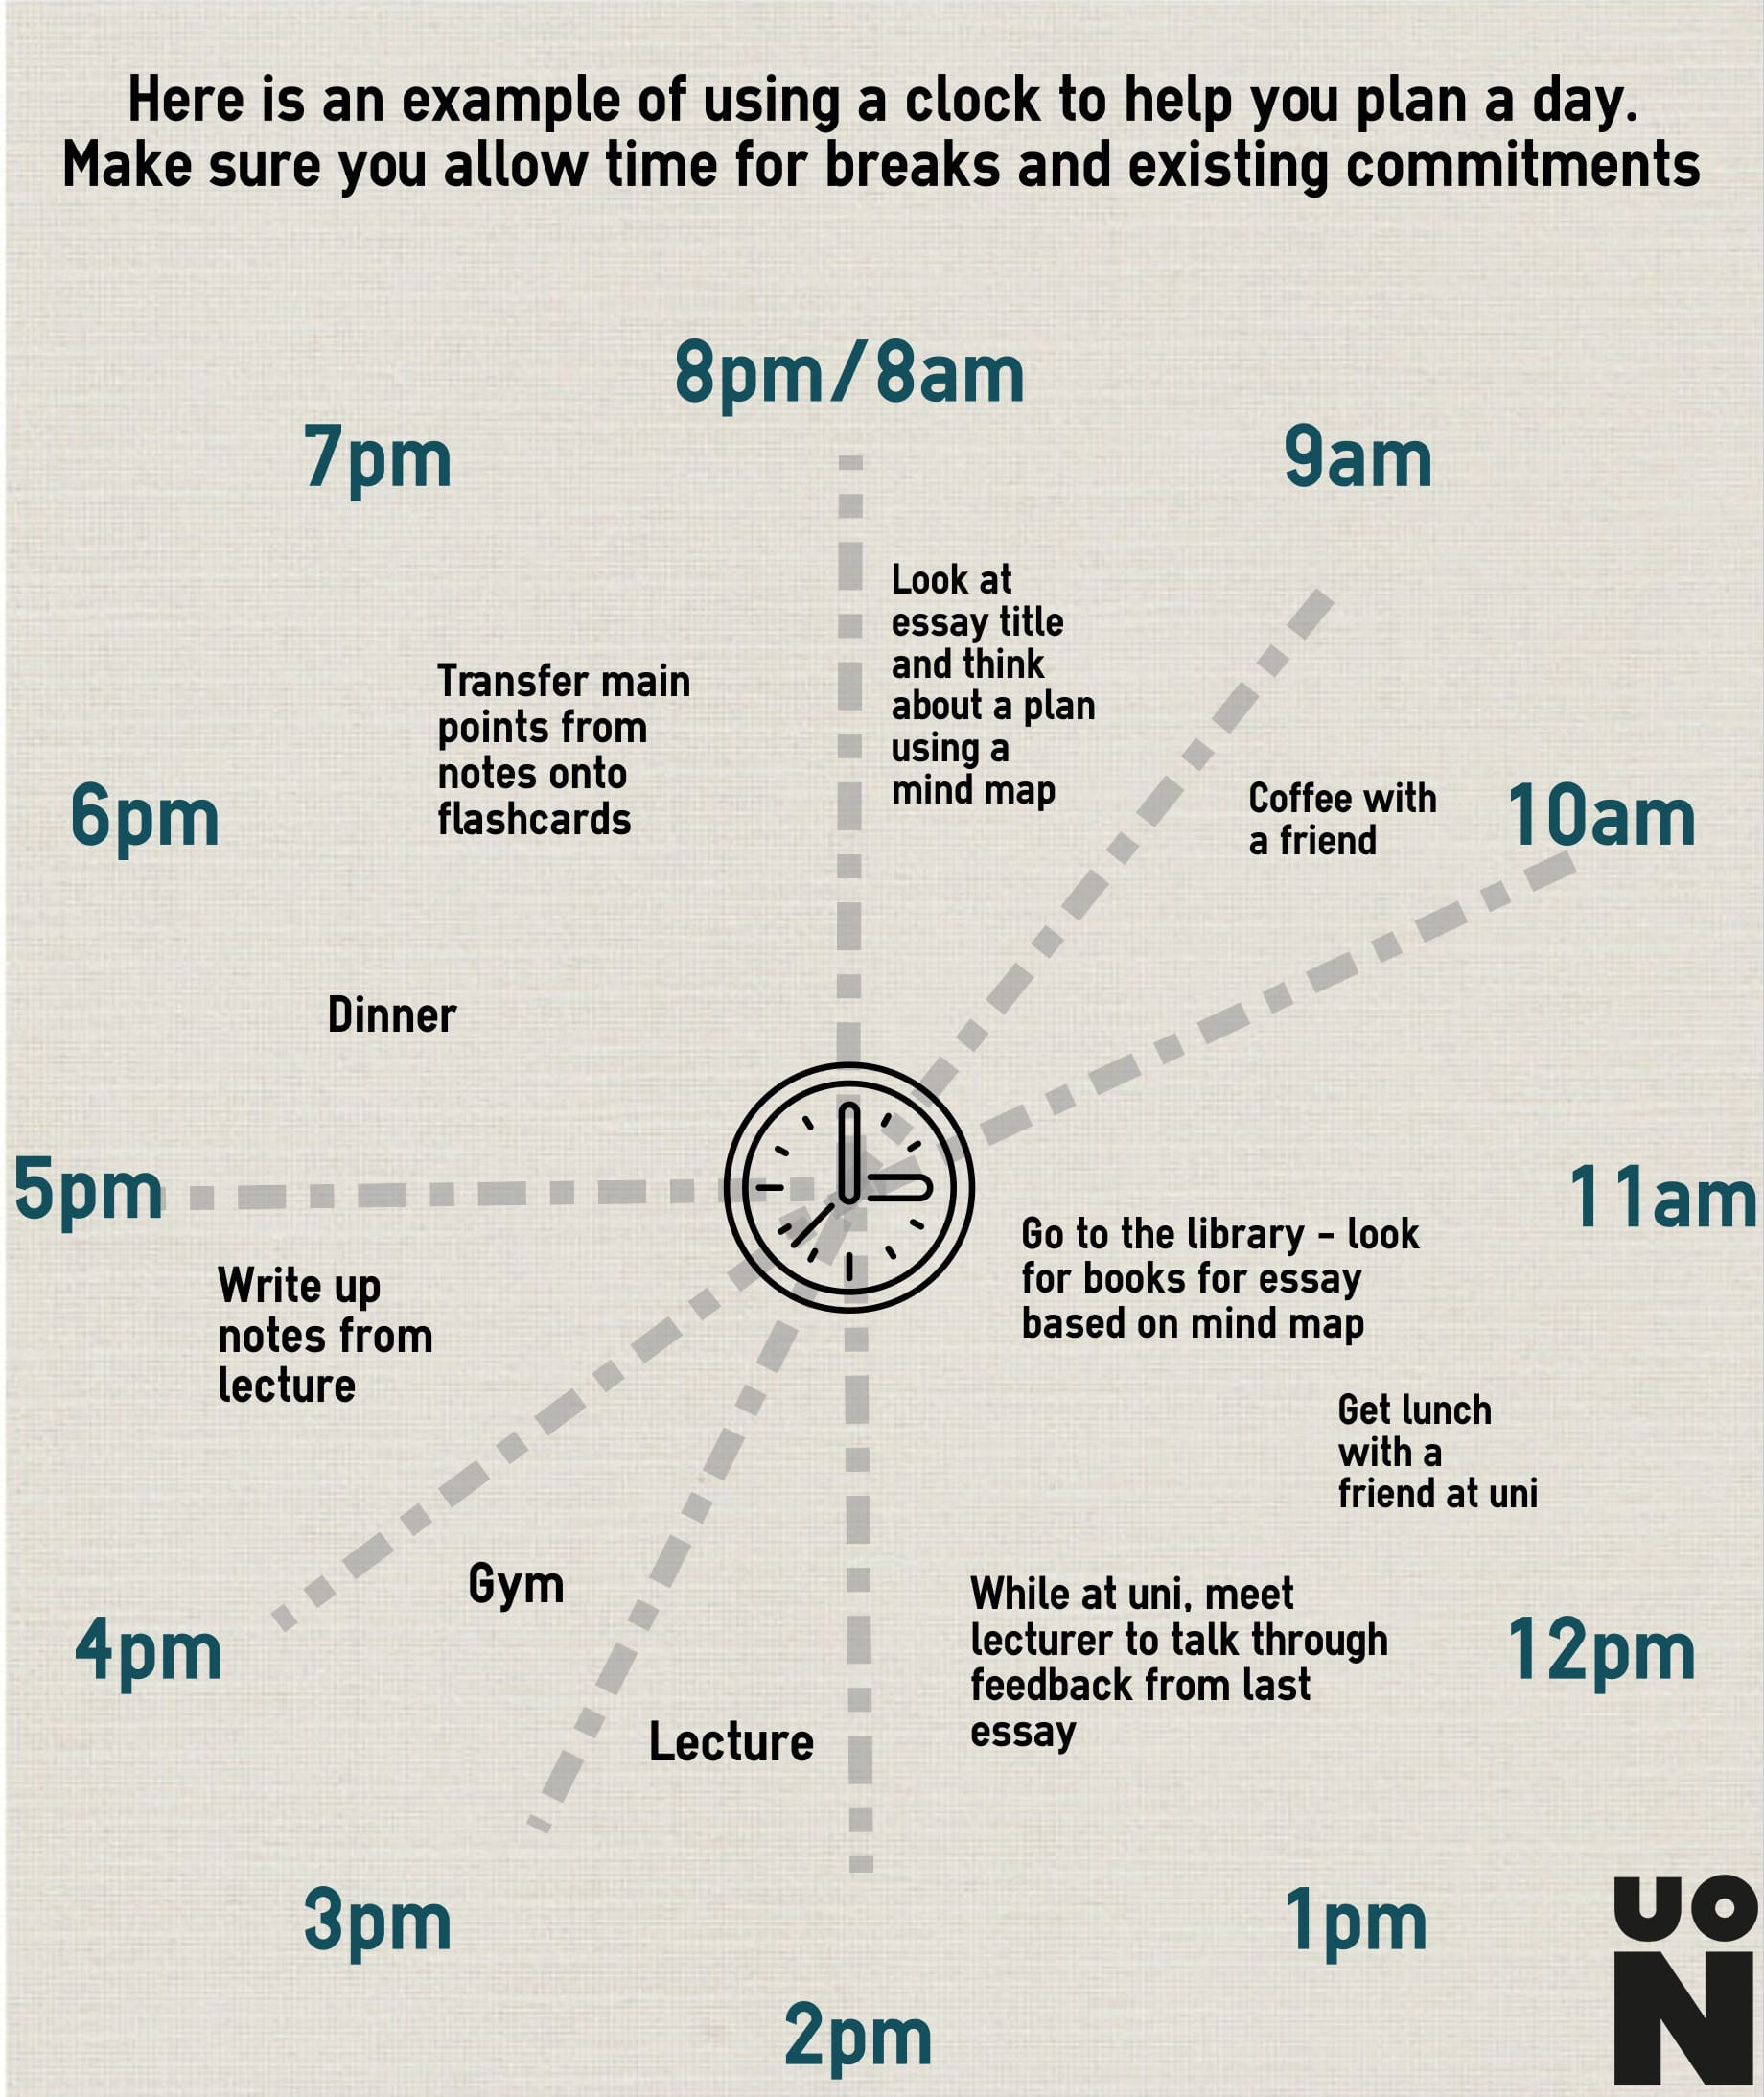 This is a visual example of using a clock to help plan your day